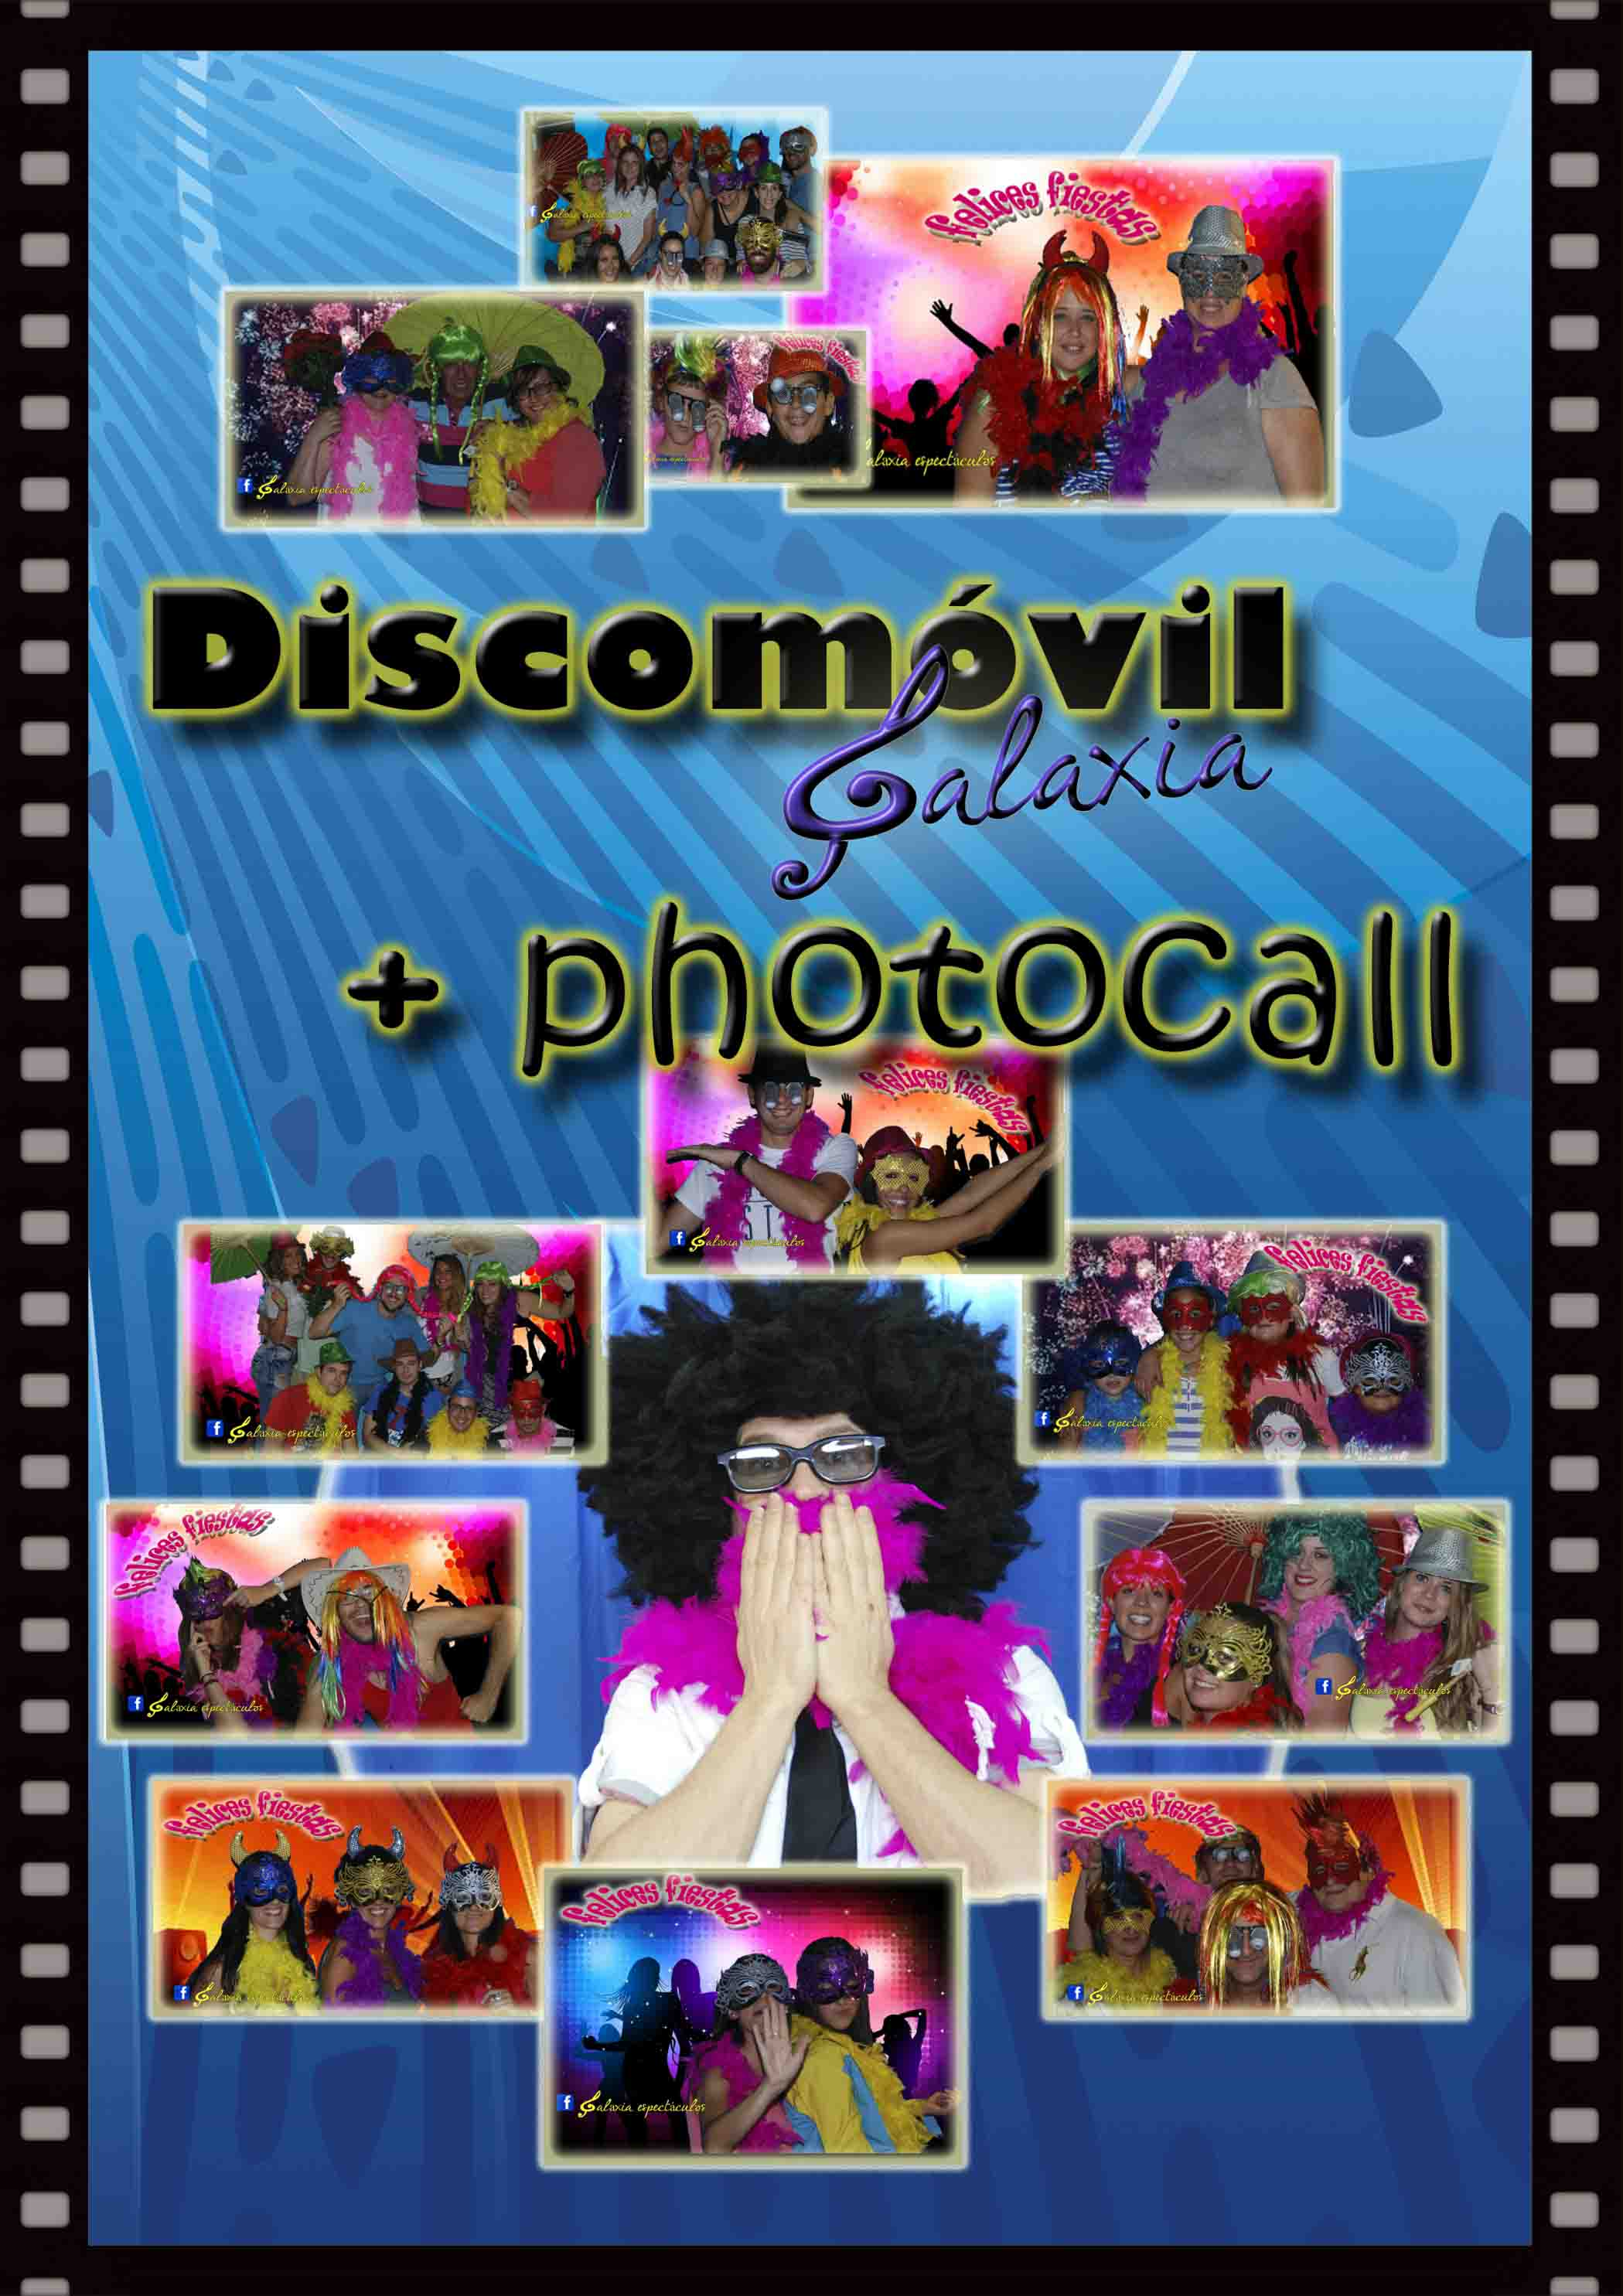 DISCOMOVIL Y PHOTOCALL